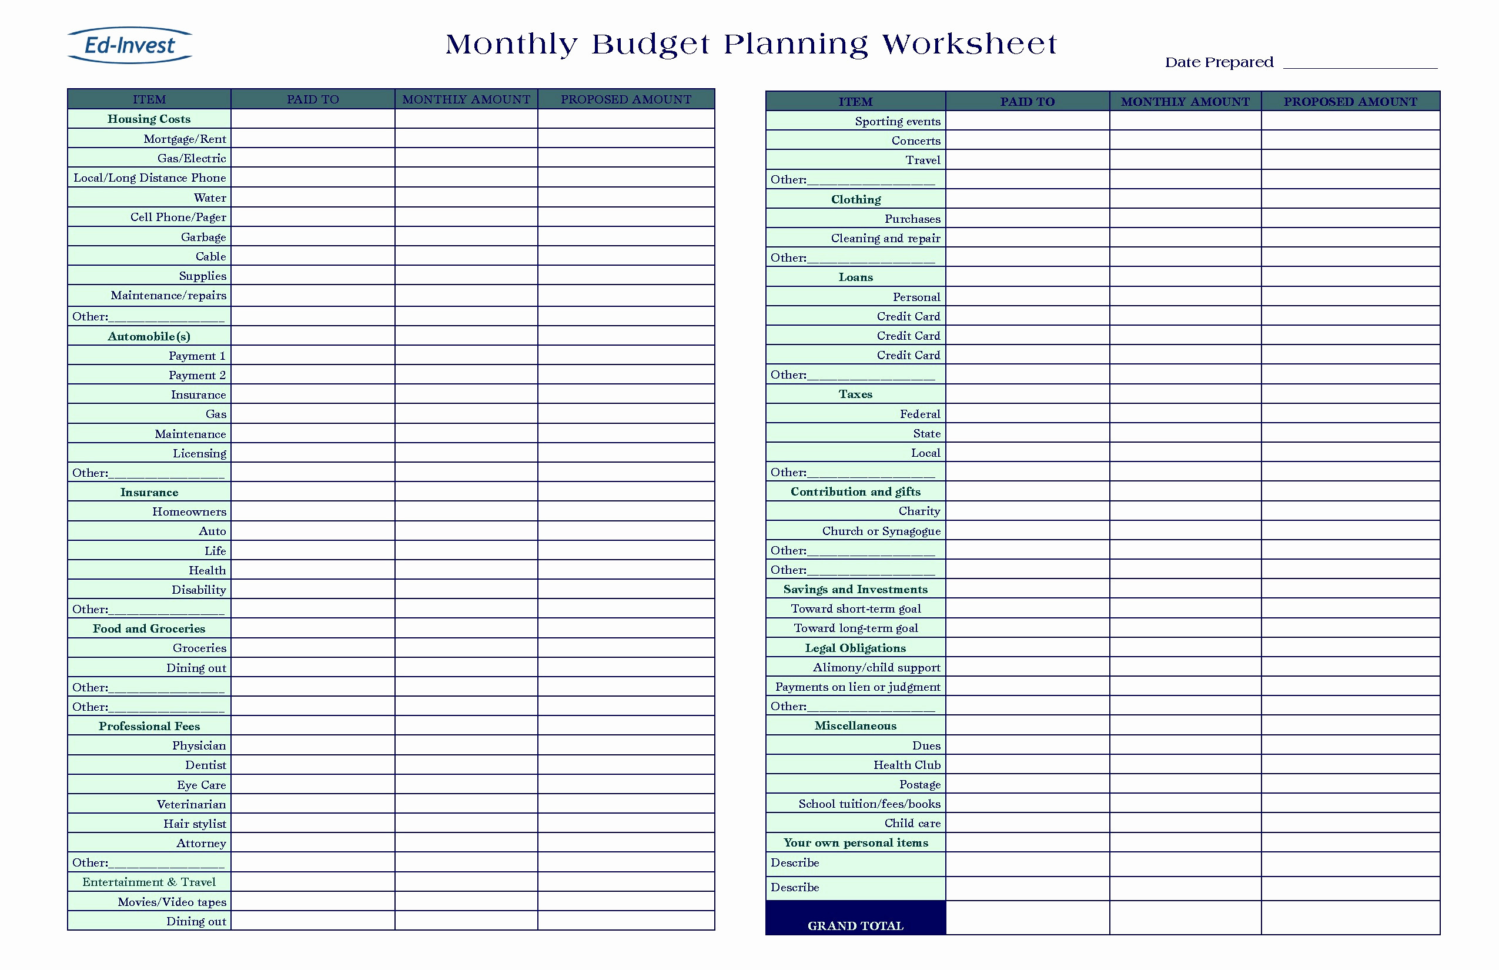 Free Spreadsheet Software For Windows 8 Intended For Business Expense Spreadsheet Template Free Downloads Yearly Report